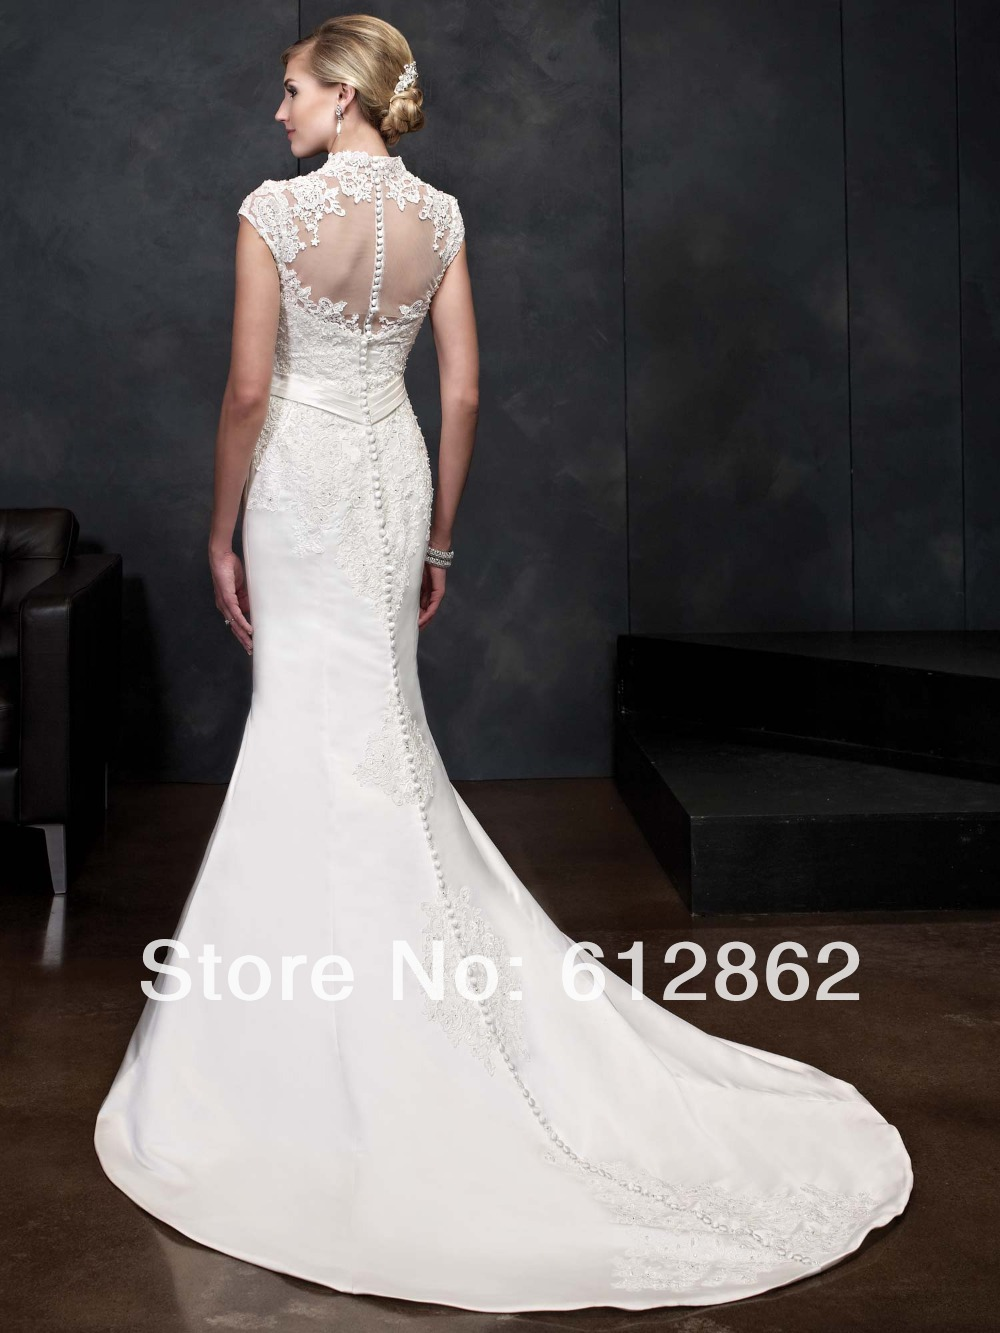 Wedding Dress Train Patterns Gown Dresses With Mermaid To Sew